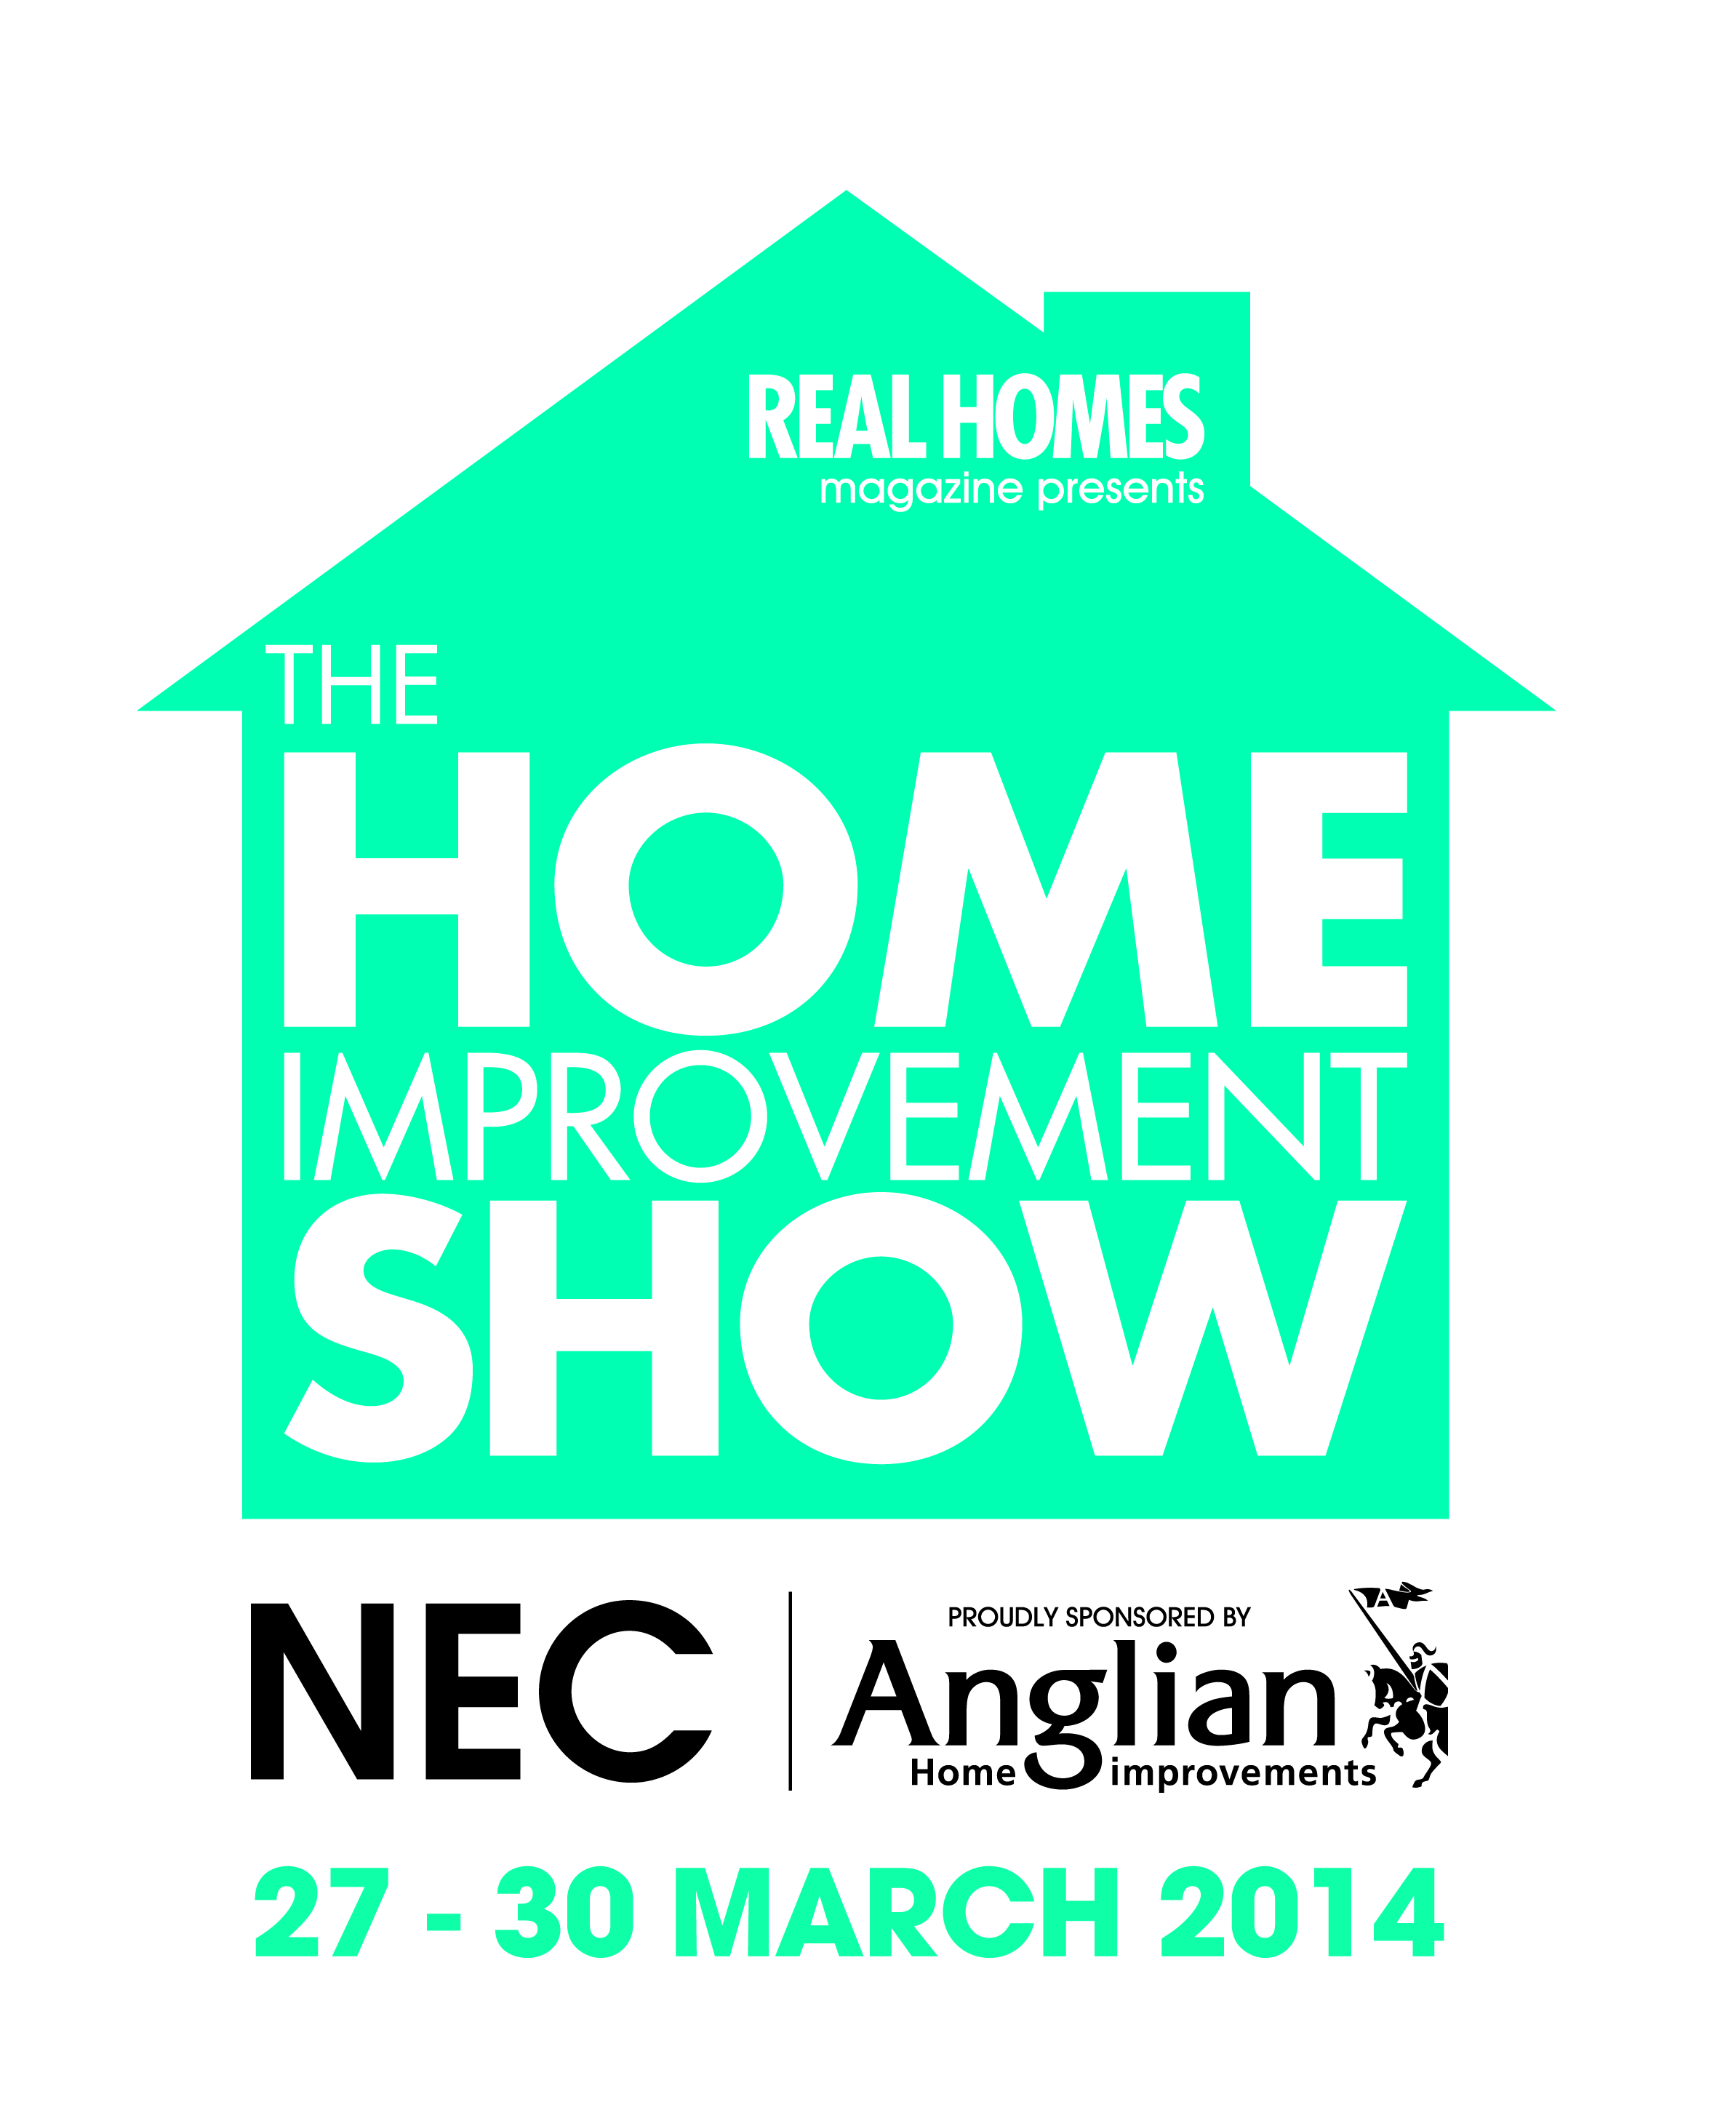 Home Improvement Show NEC March 27-30